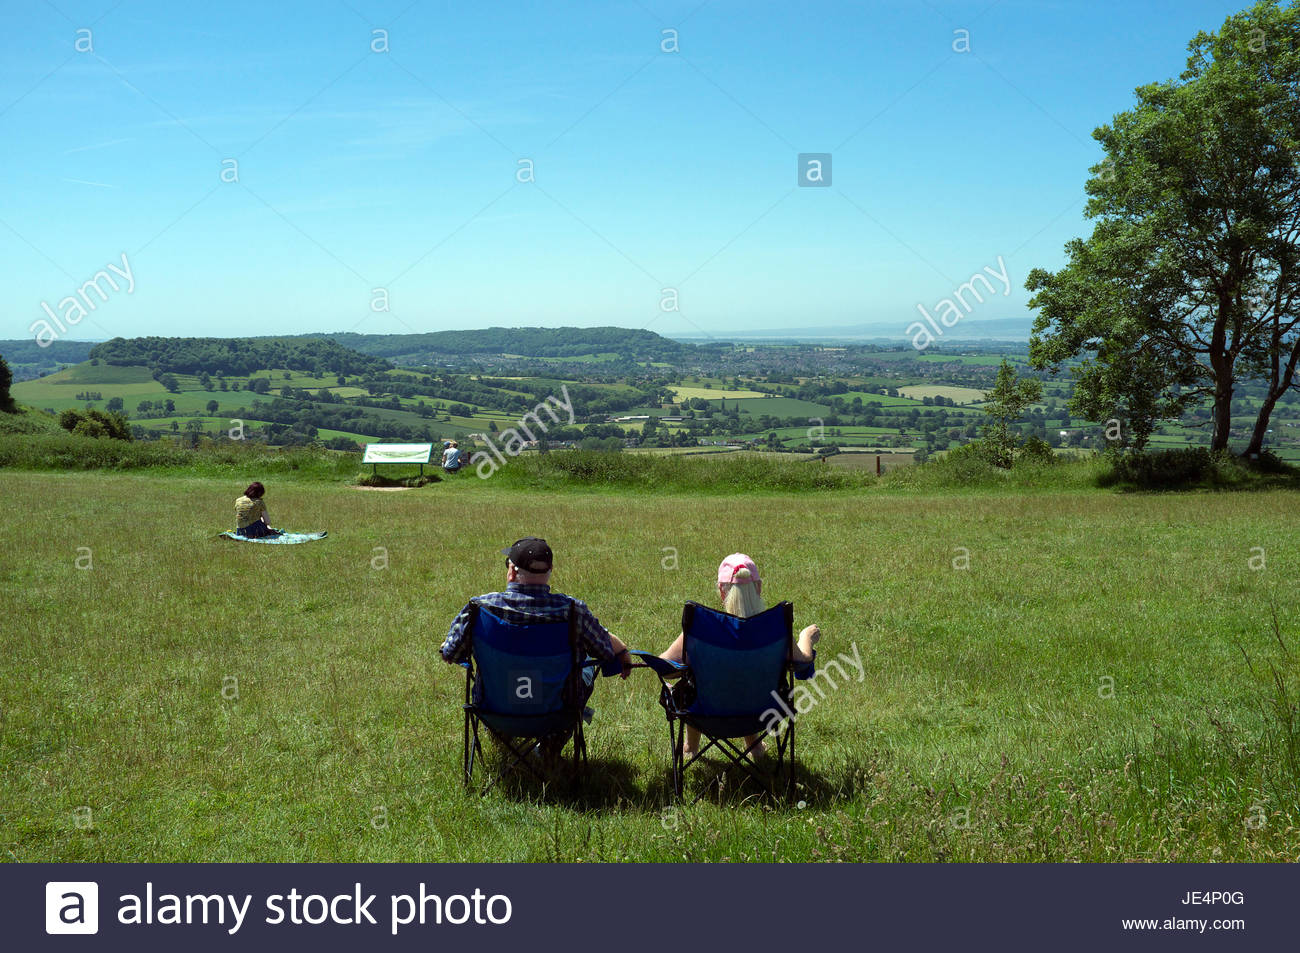 A couple sit in chairs as they look across the Severn Vale, seen from the Coaley Peak pic-nic spot and viewpoint. - Stock Image